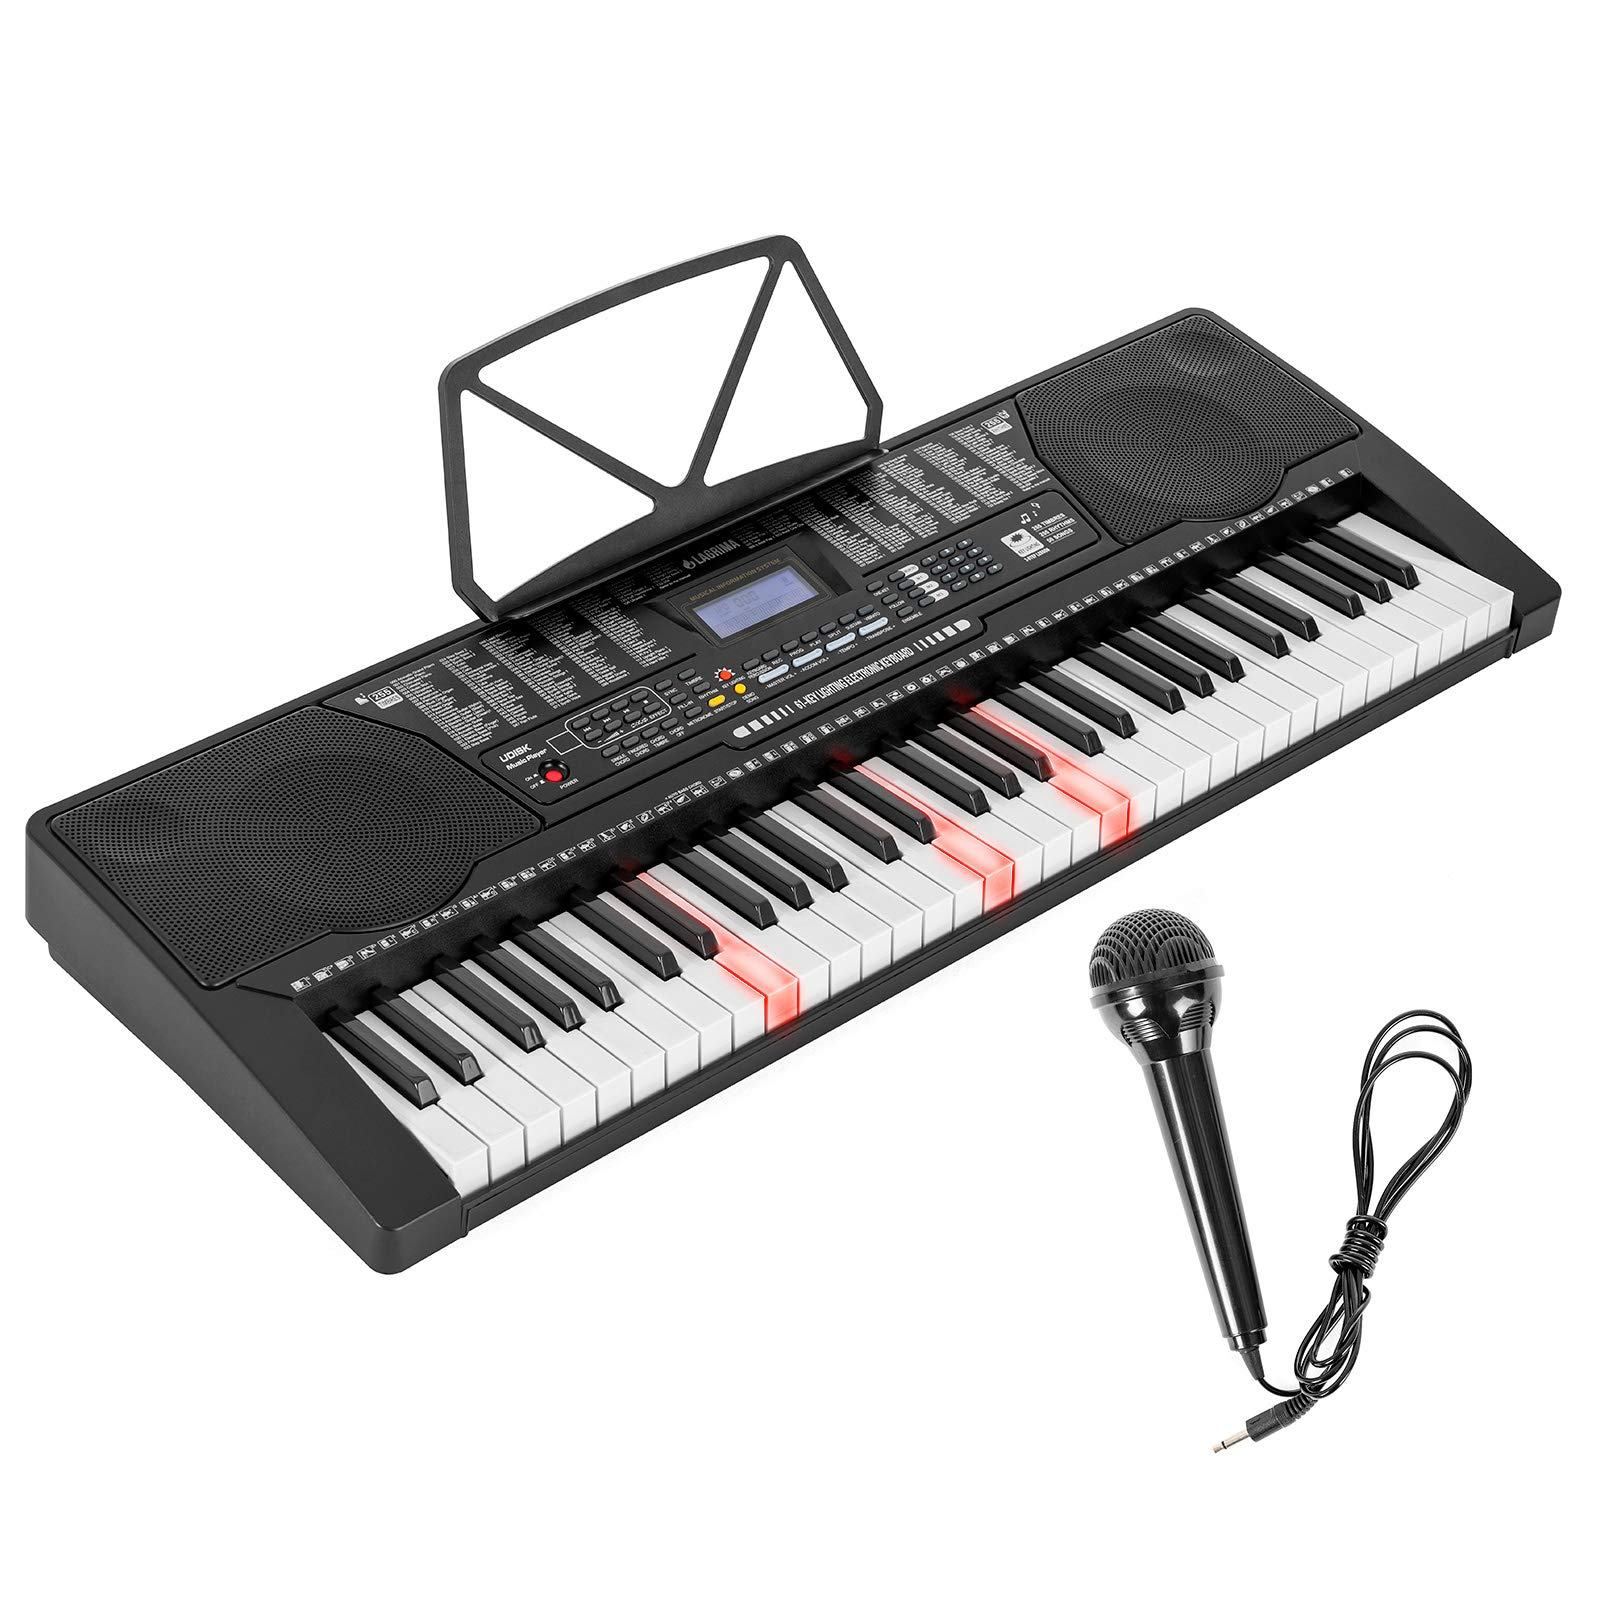 LAGRIMA 61 Key Electric Keyboard Piano w/Light Up Keys for Beginner, Lighted Portable Keyboard w/Music Player Function, Micphone, Power Supply, Music Stand, Black